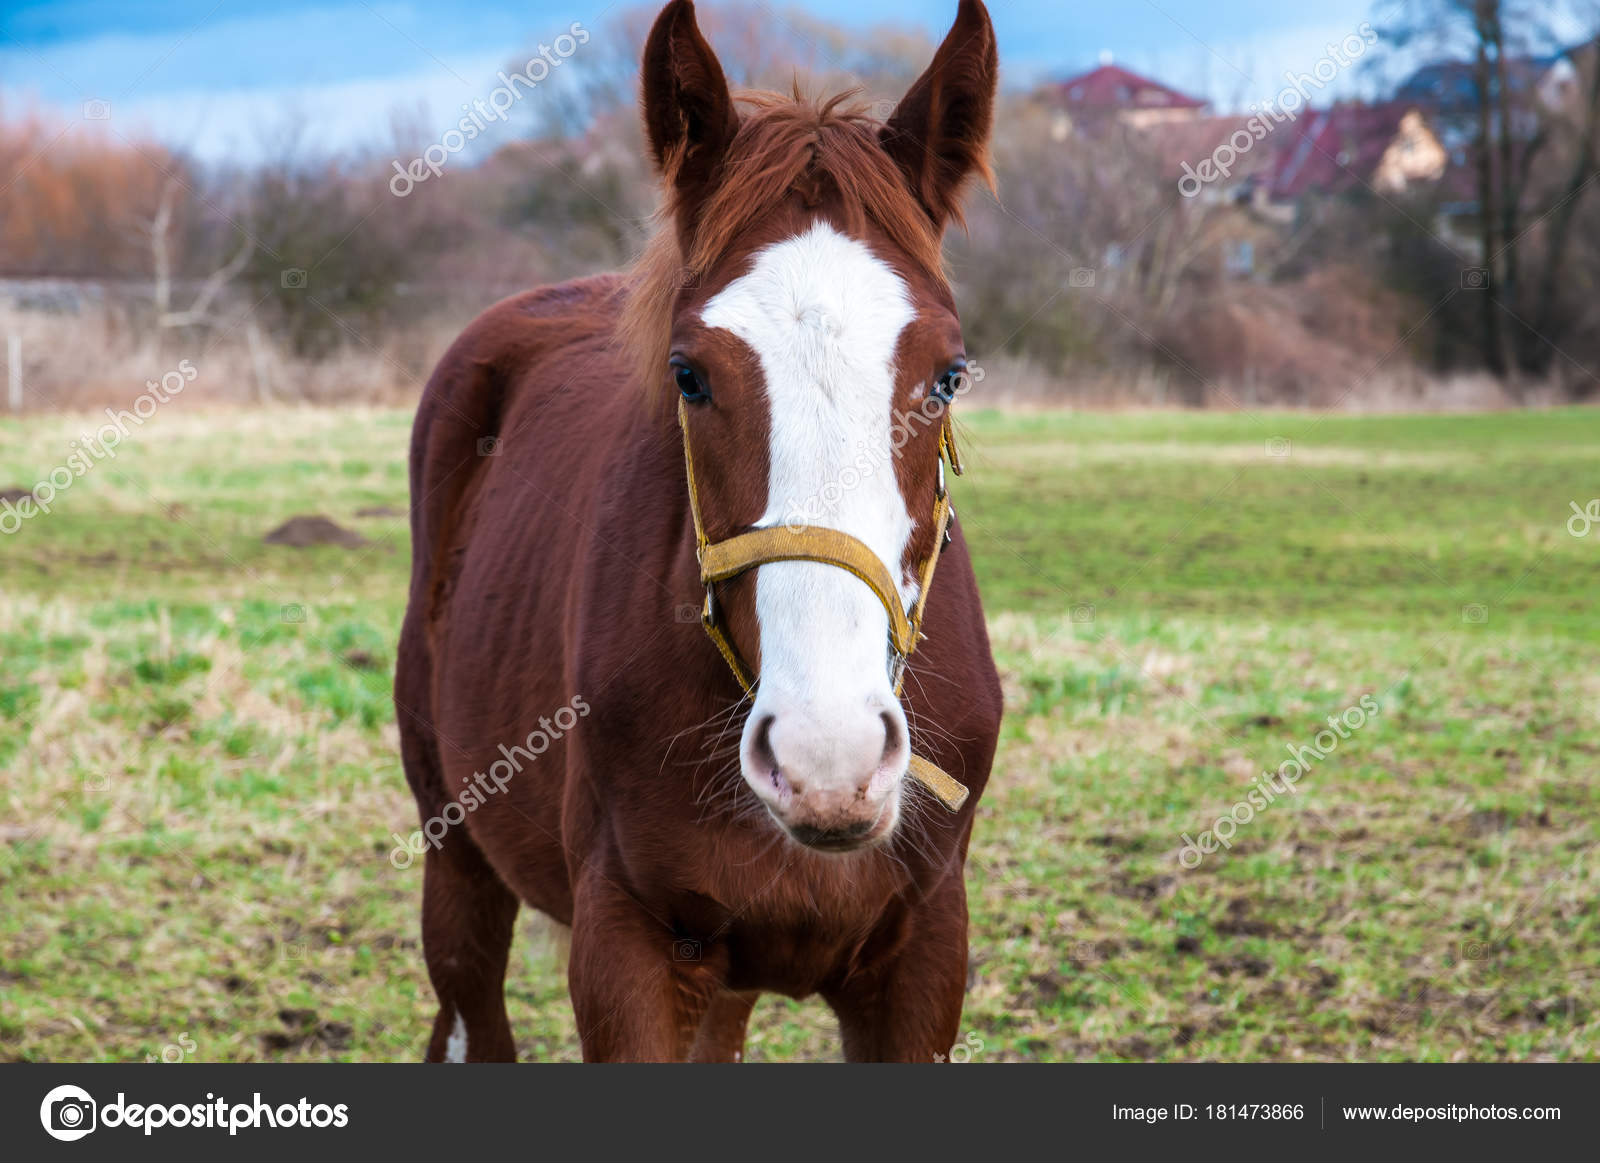 Front view horse grazing meadow stock photo smouker68 181473866 a front view of a horse grazing on a meadow photo by smouker68 sciox Choice Image